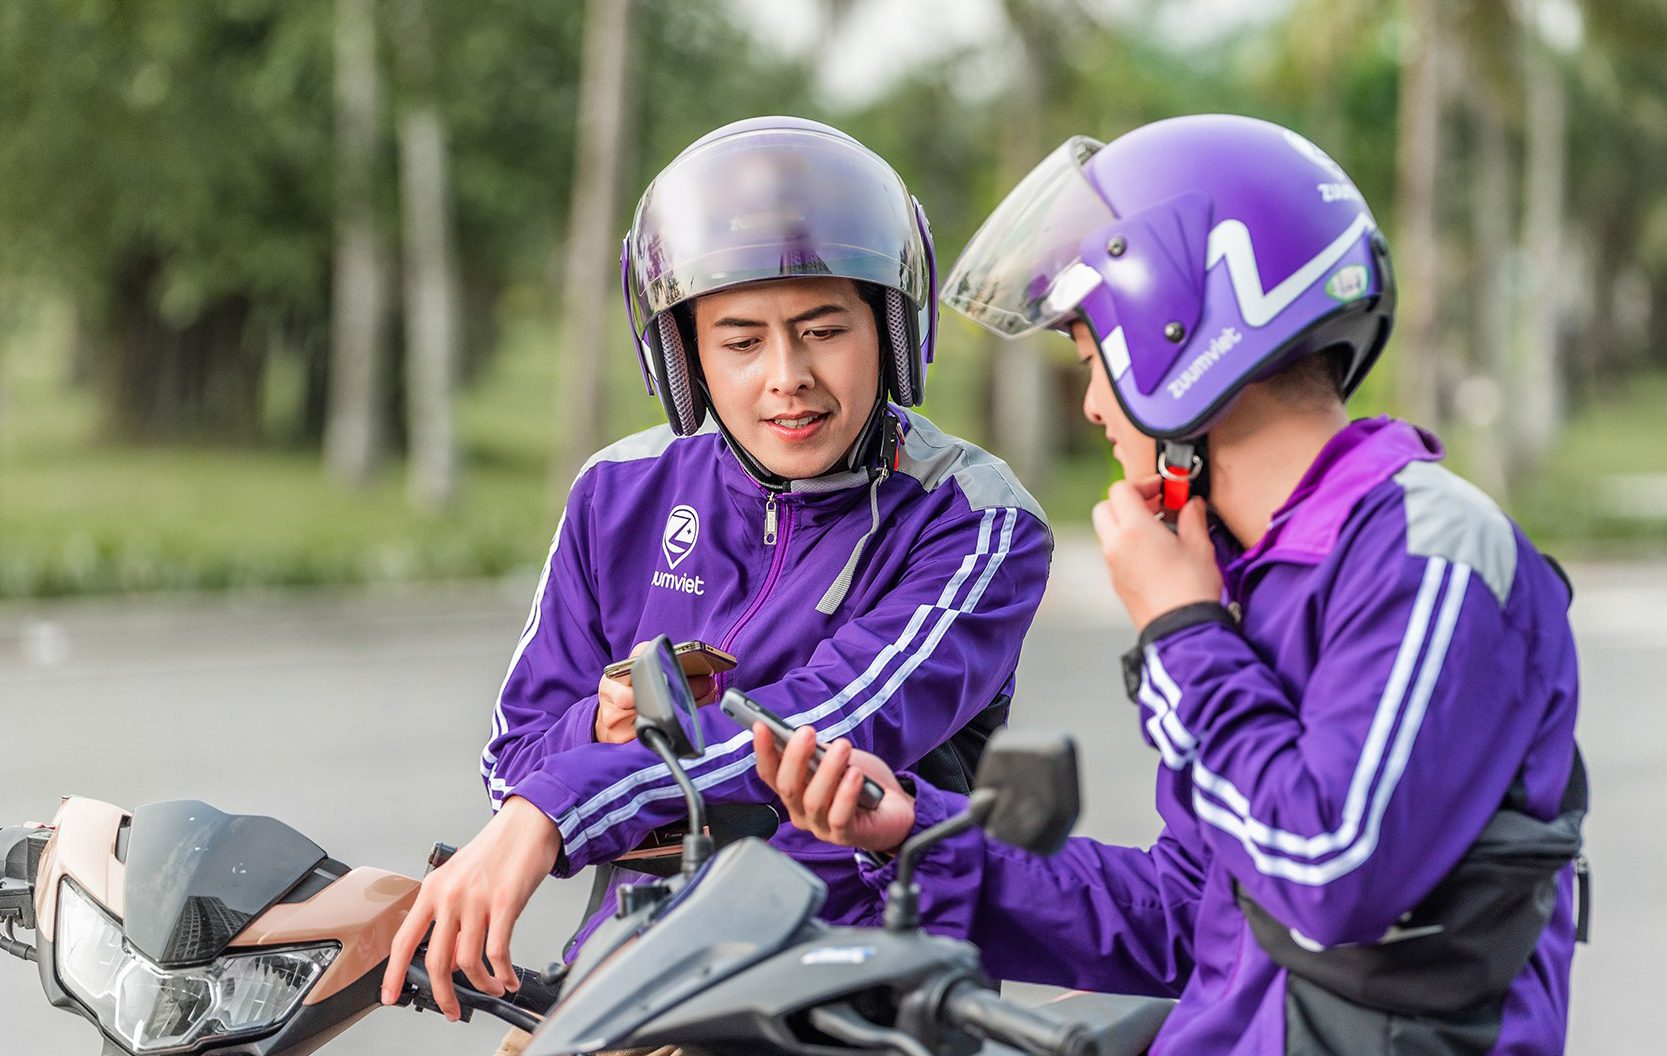 Ride-hailing in Vietnam: two new apps hope to challenge Grab